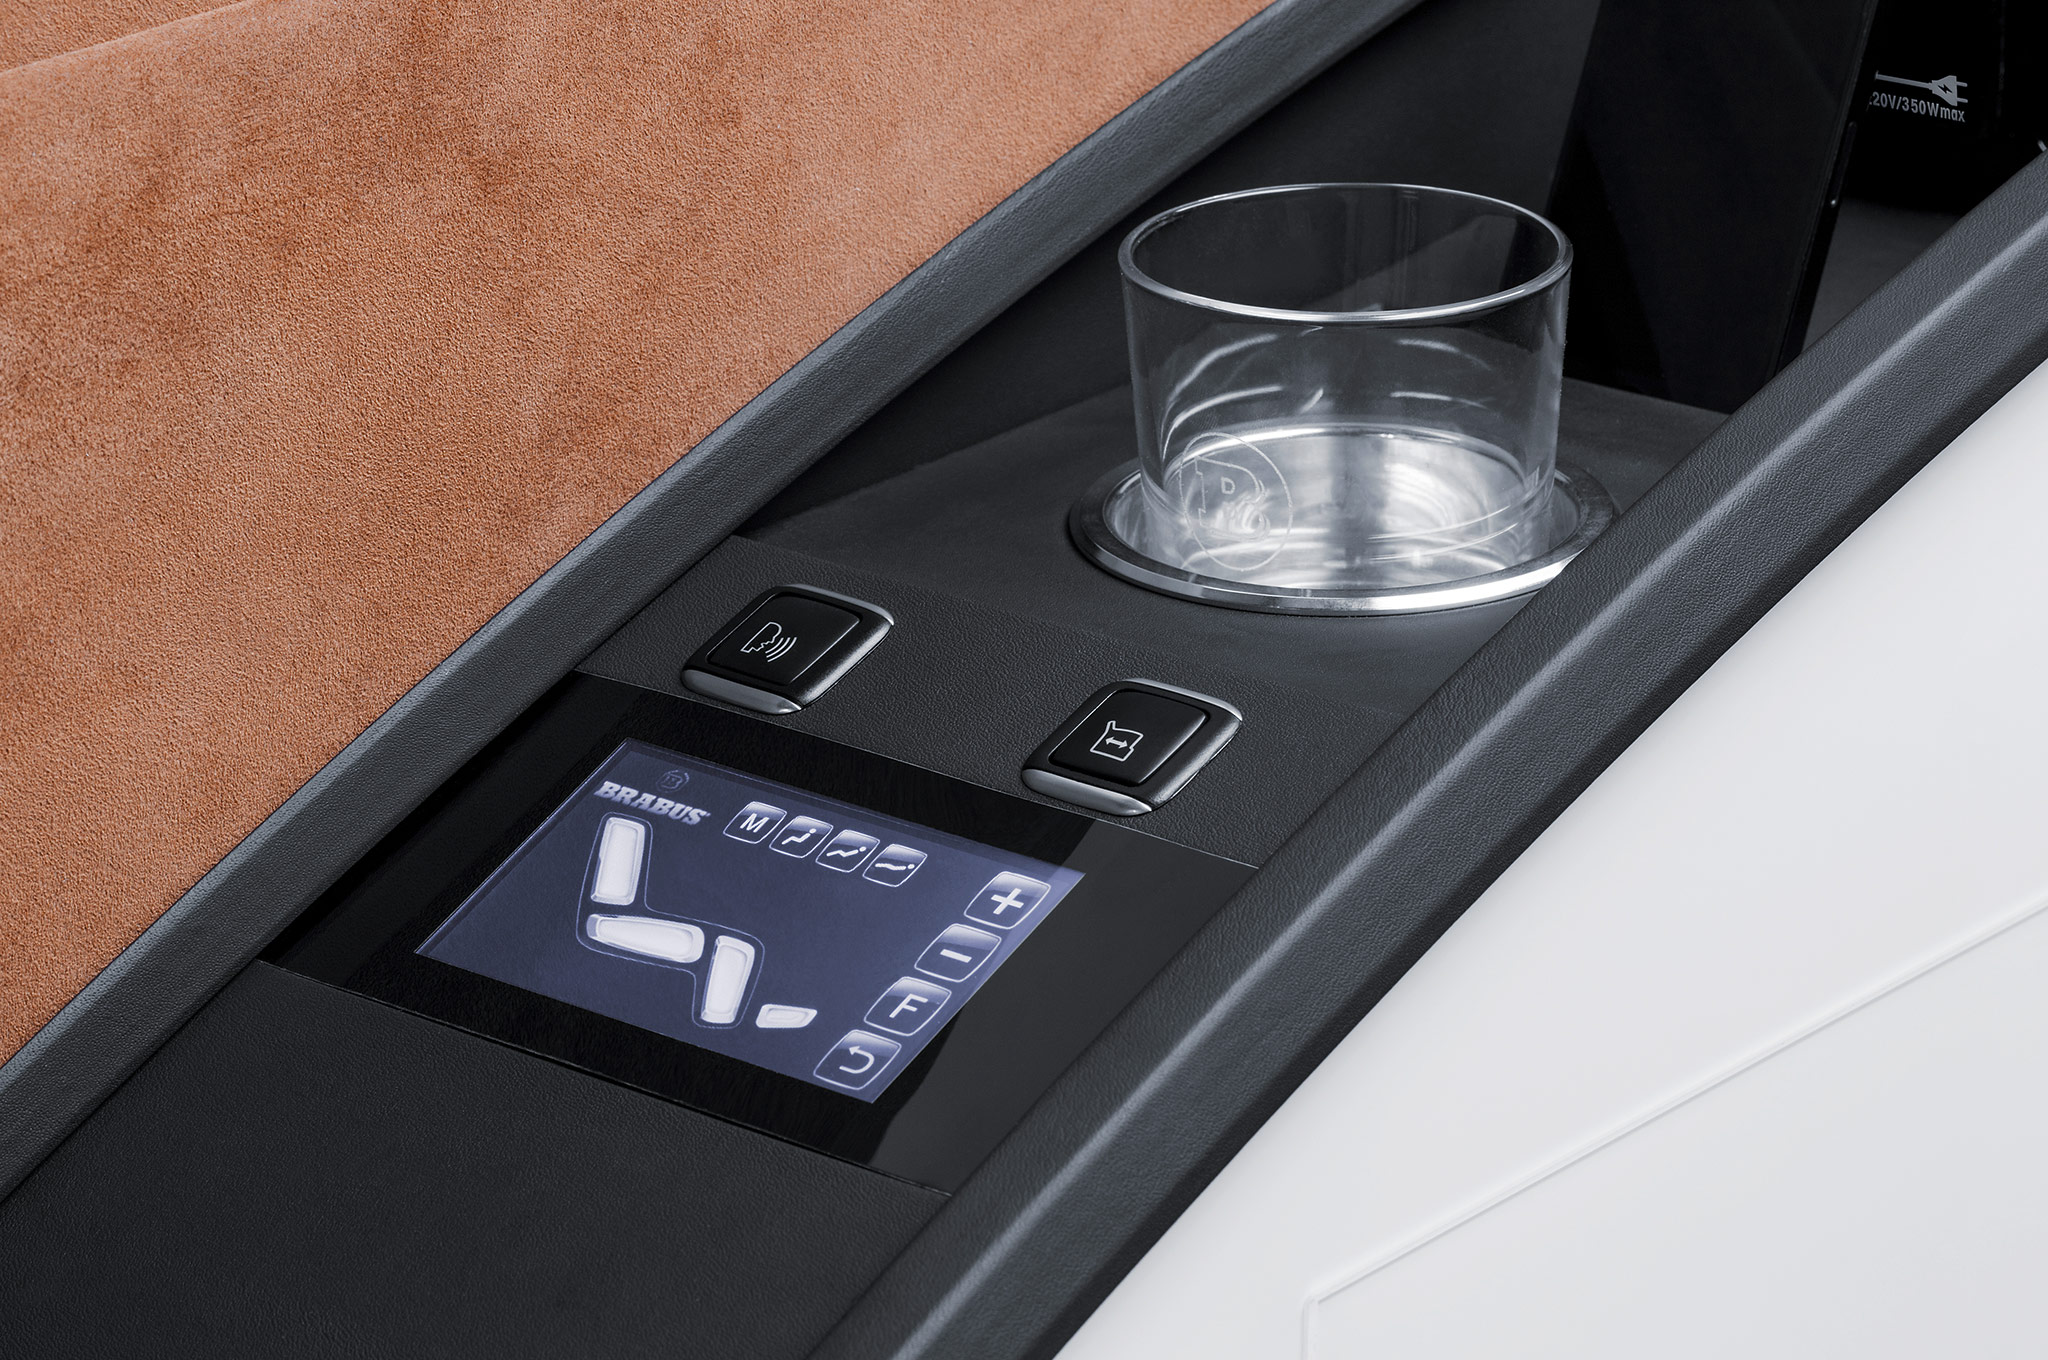 ' ' from the web at 'http://st.automobilemag.com/uploads/sites/11/2014/08/Brabus-Mercedes-Benz-Sprinter-Business-Lounge-seat-controller.jpg'